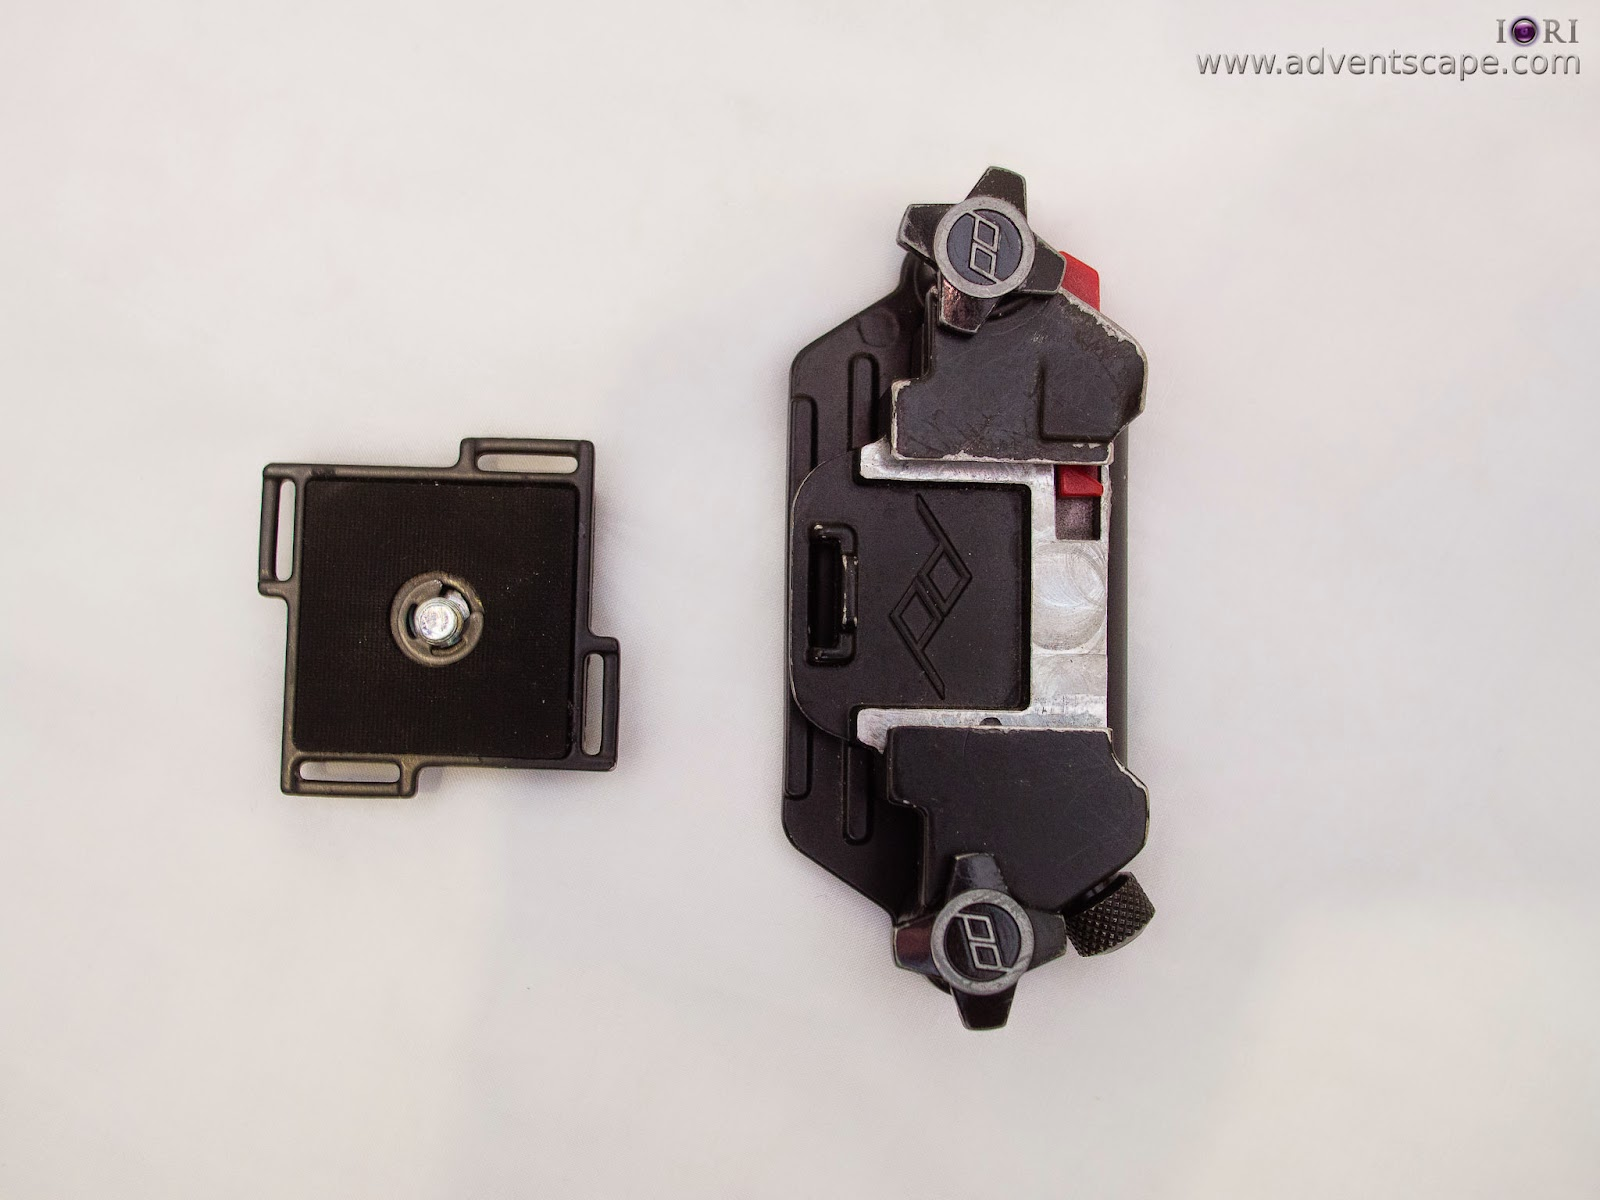 Philip Avellana, iori, adventscape, Peak Design, Capture Camera Clip System, Capture, Clip System, mount, Arca Swiss, quick release plate, mount